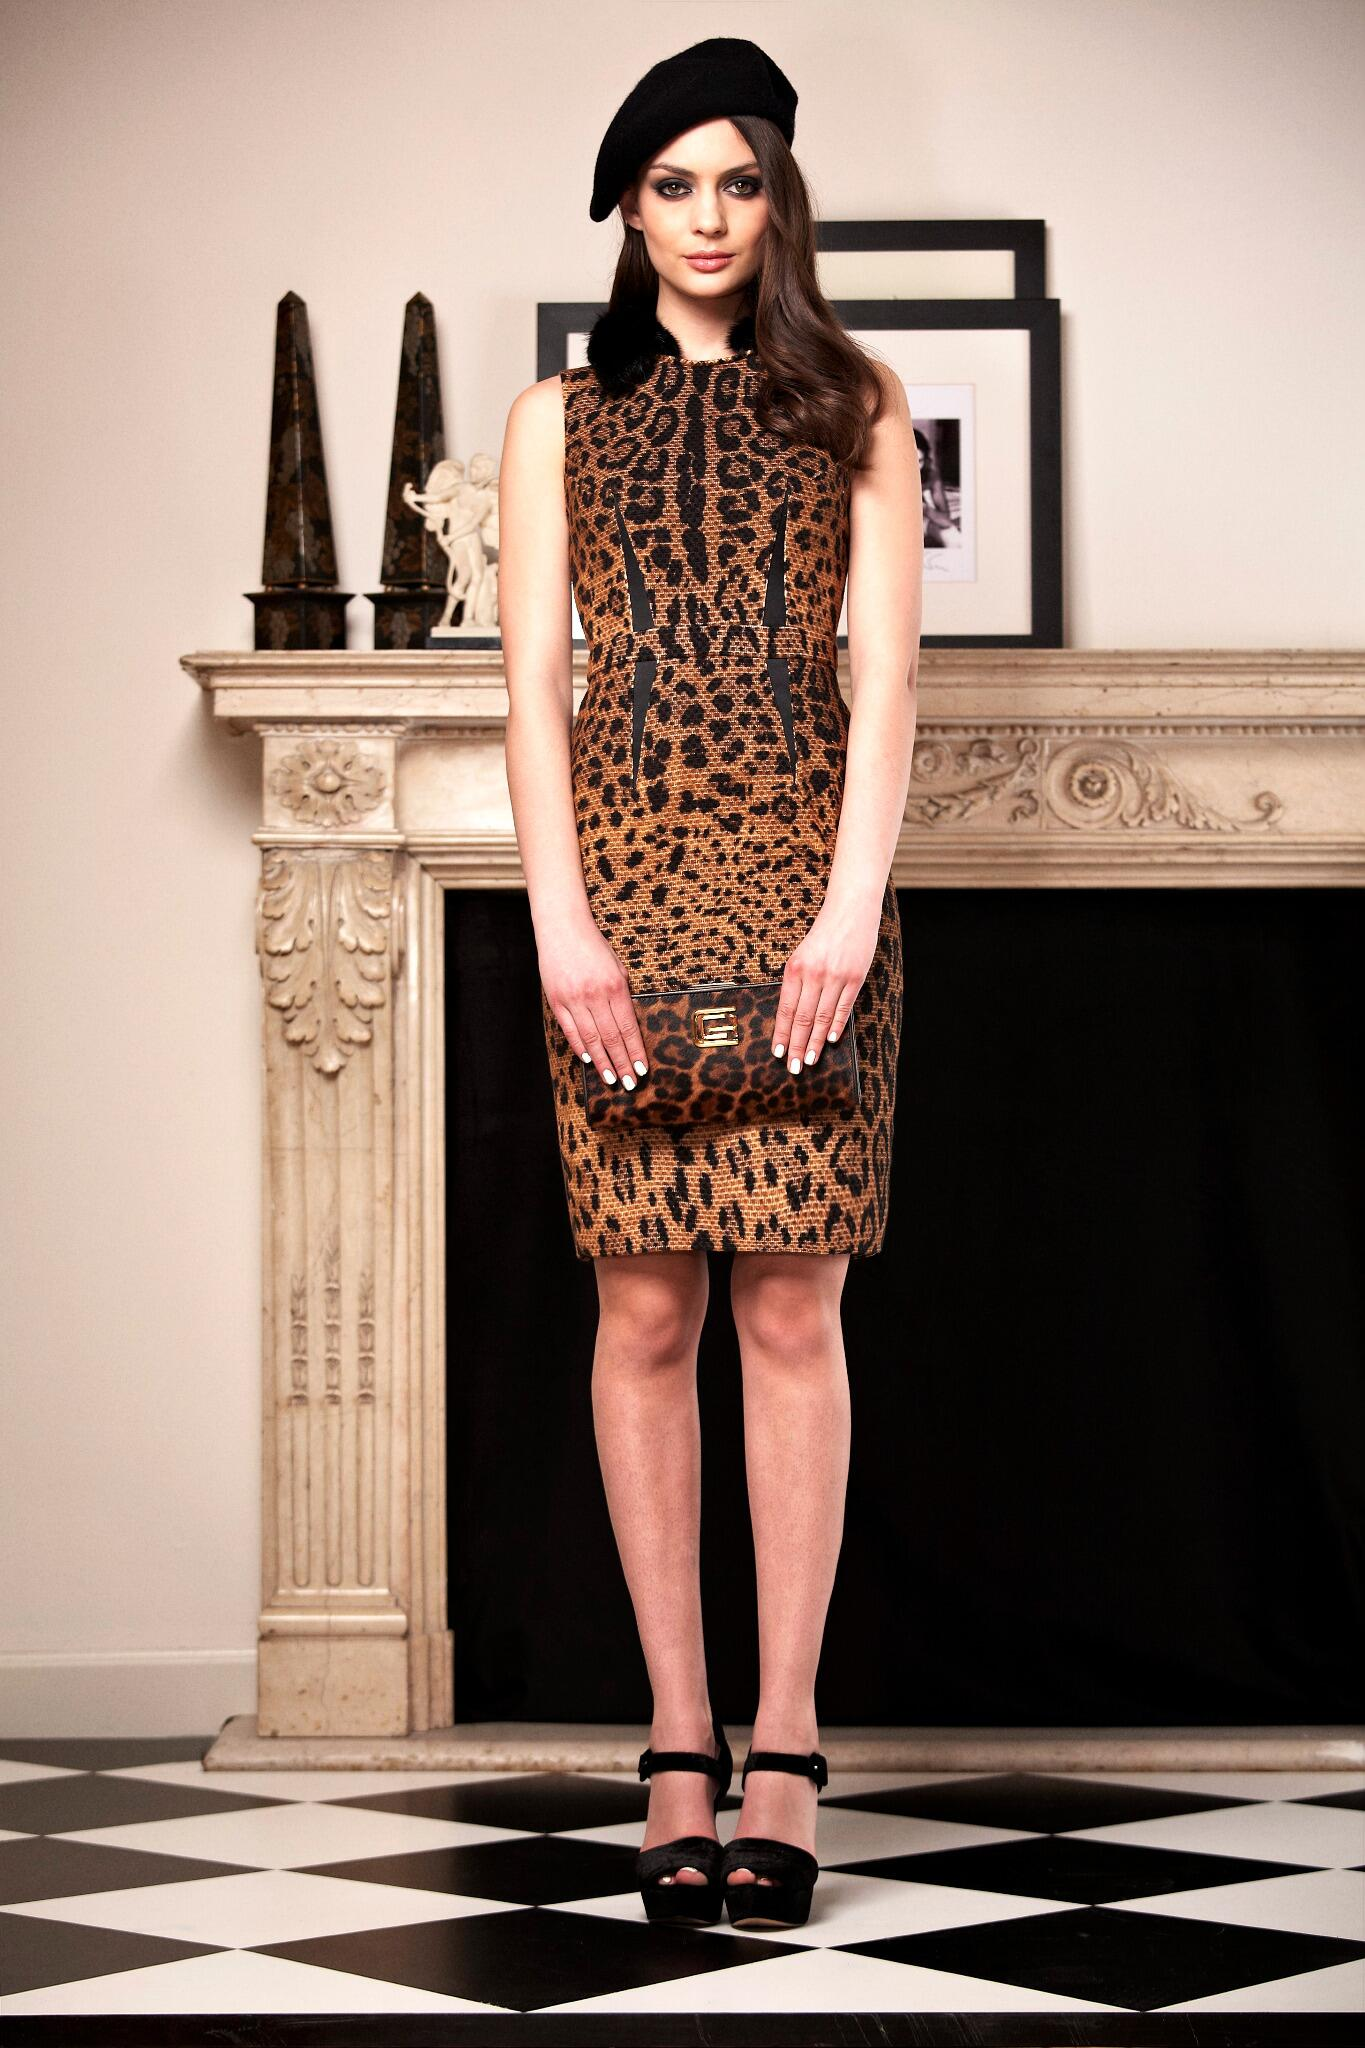 Leopard chic and ladylike details for the uptown girl of the Cavalli Class FW 2013 collection. http://t.co/YN5GGhjb0B